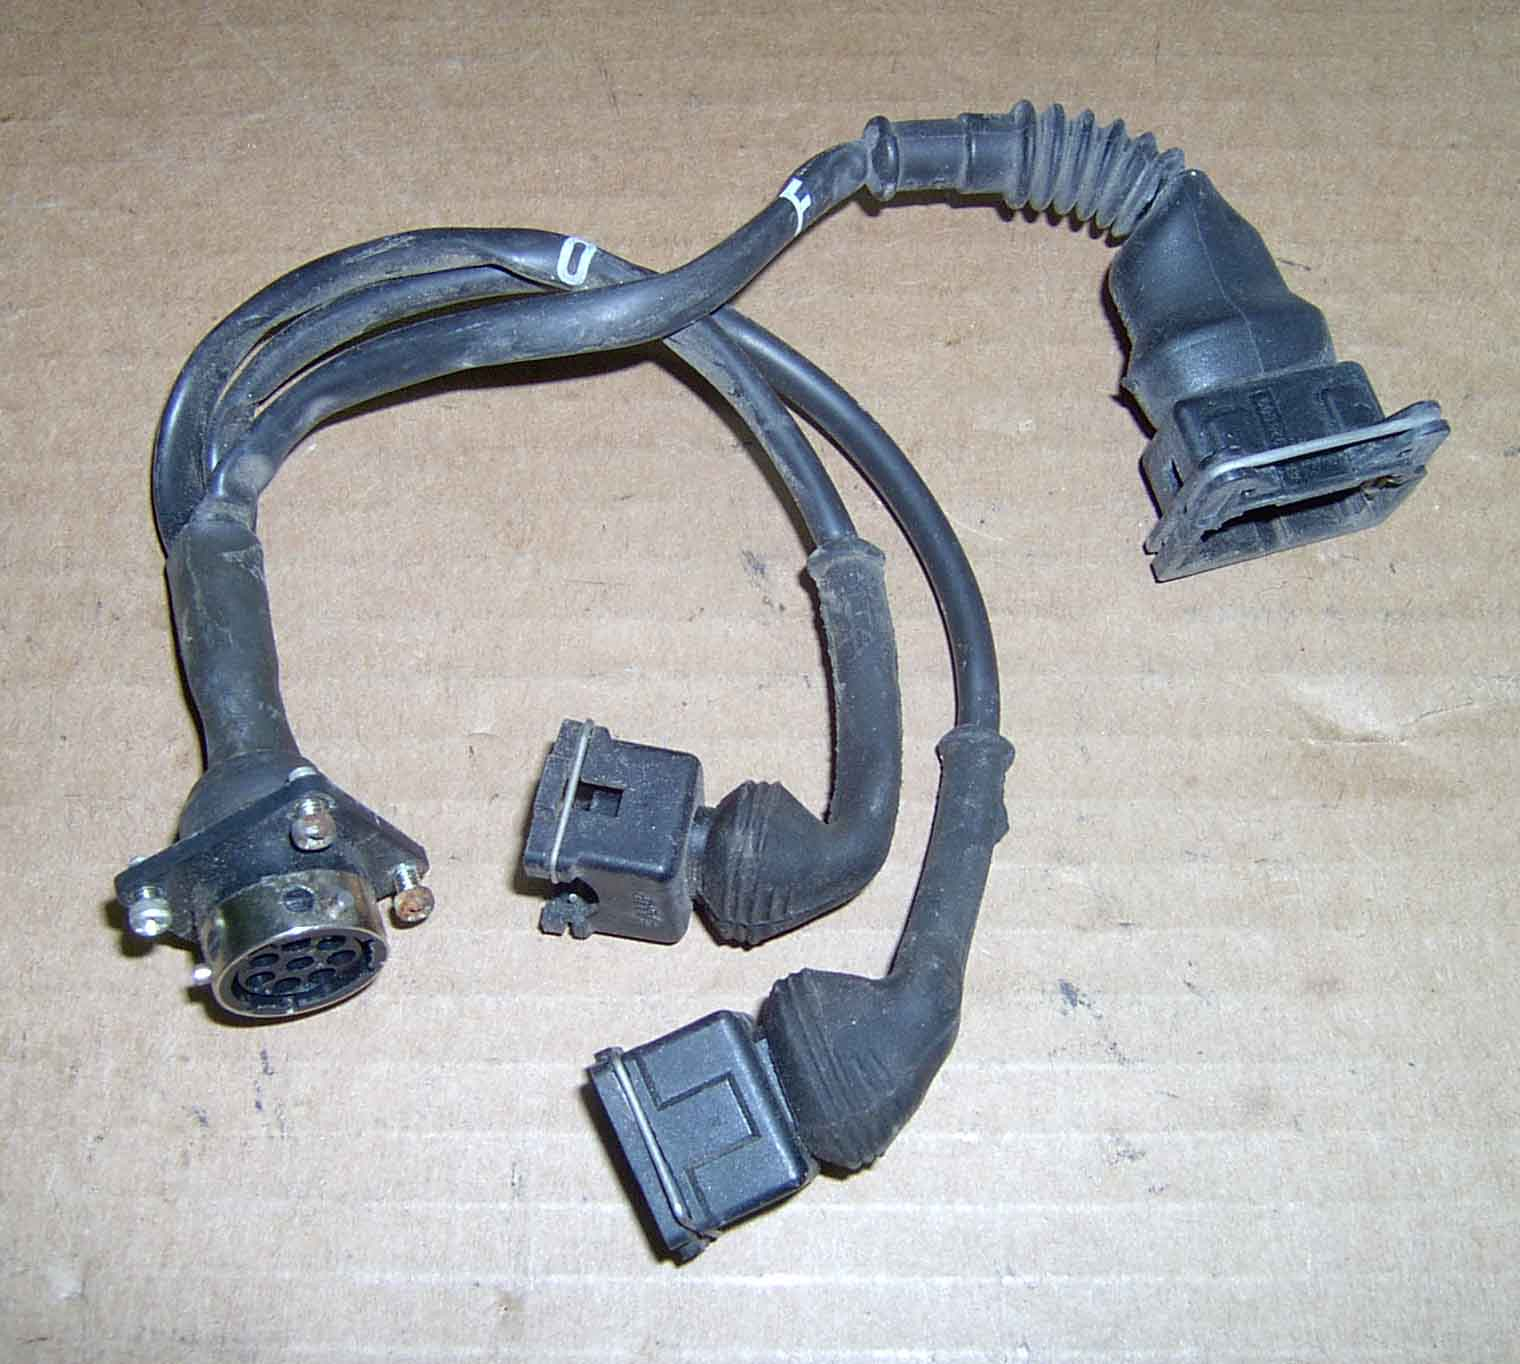 Throttle Body Wiring Harness Wire Data Schema Ducati Bodies 748 916